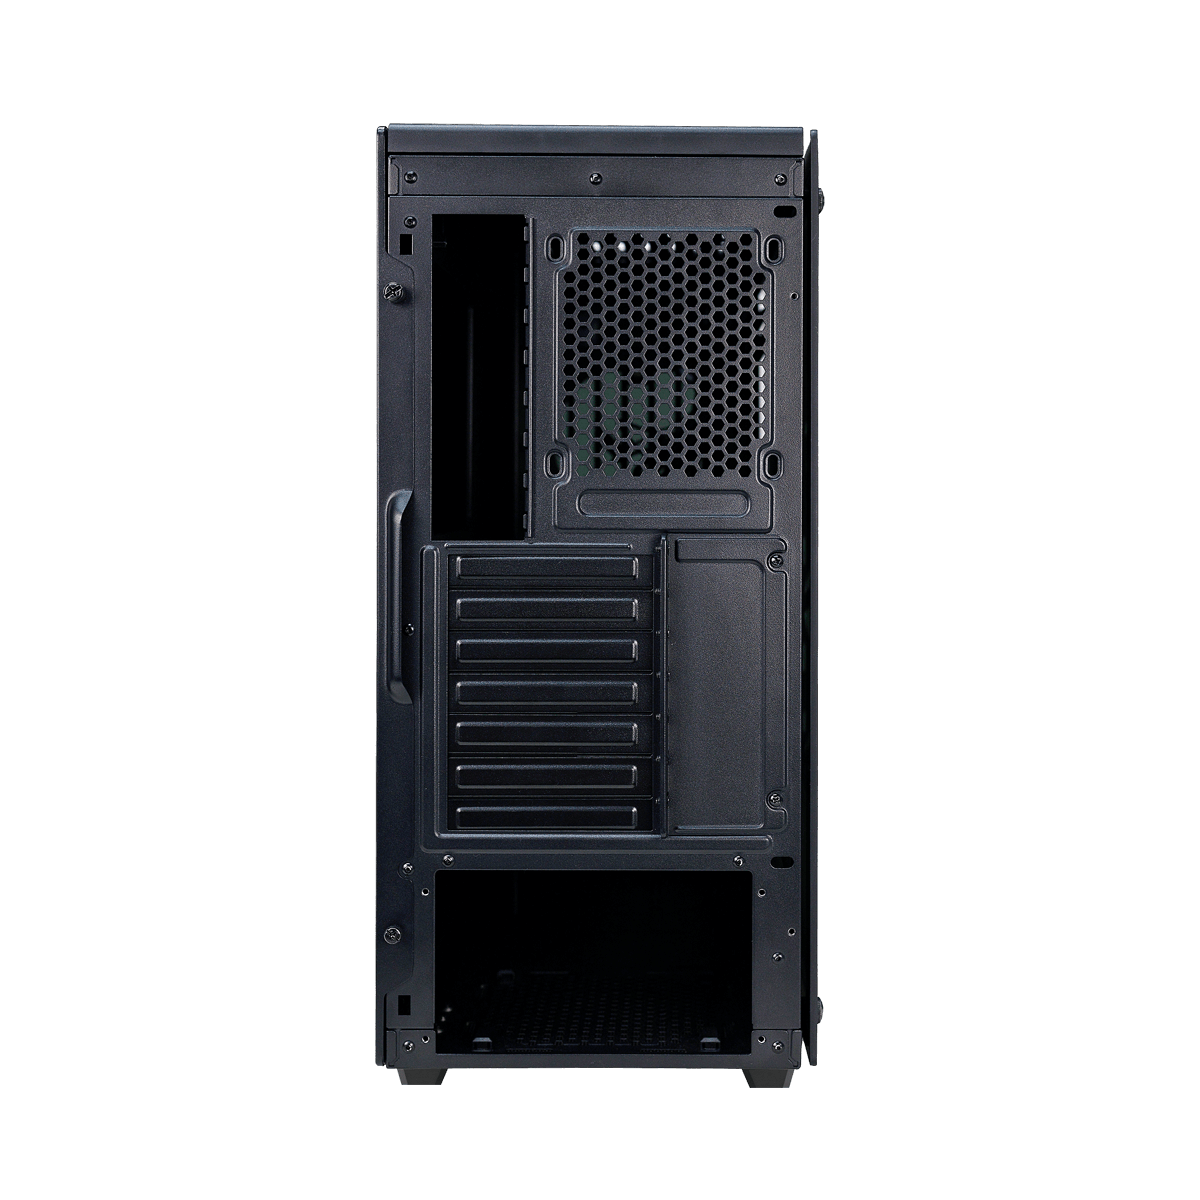 EVGA DG-75 Midi Tower Chassis with Tempered Glass - Matte Black - 150-B0-2020-KR